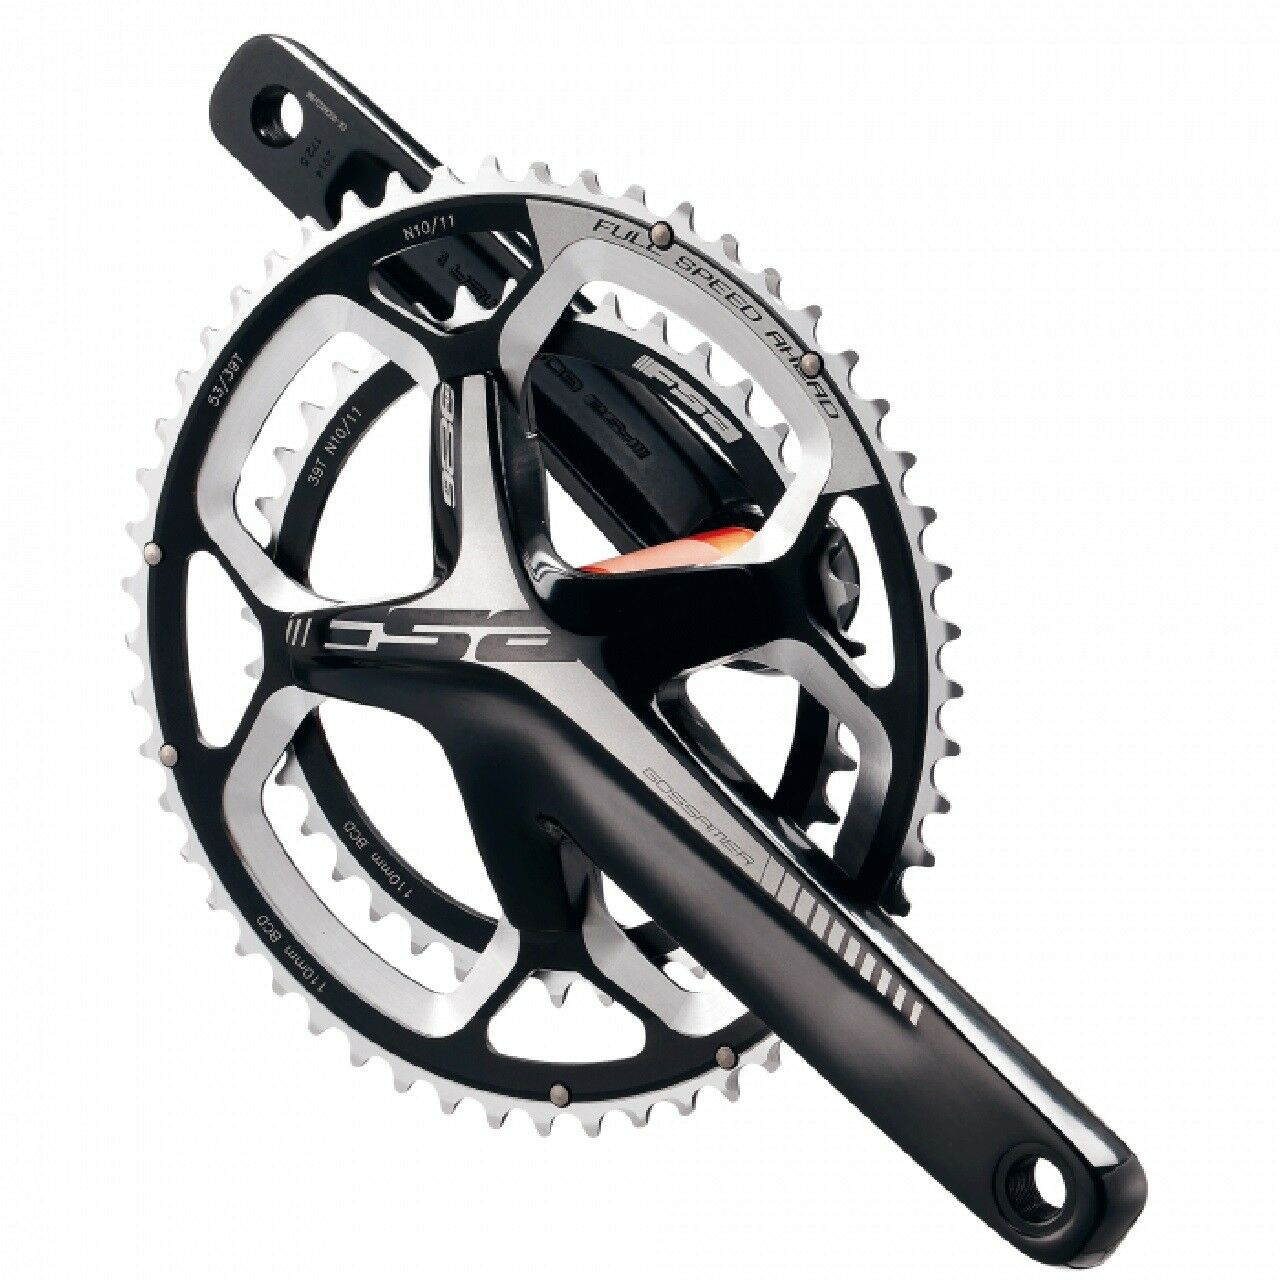 FSA GOSSAMER PRO ABS ALLOY DOUBLE CRANKSET 36 46T - 170mm BB386EVO